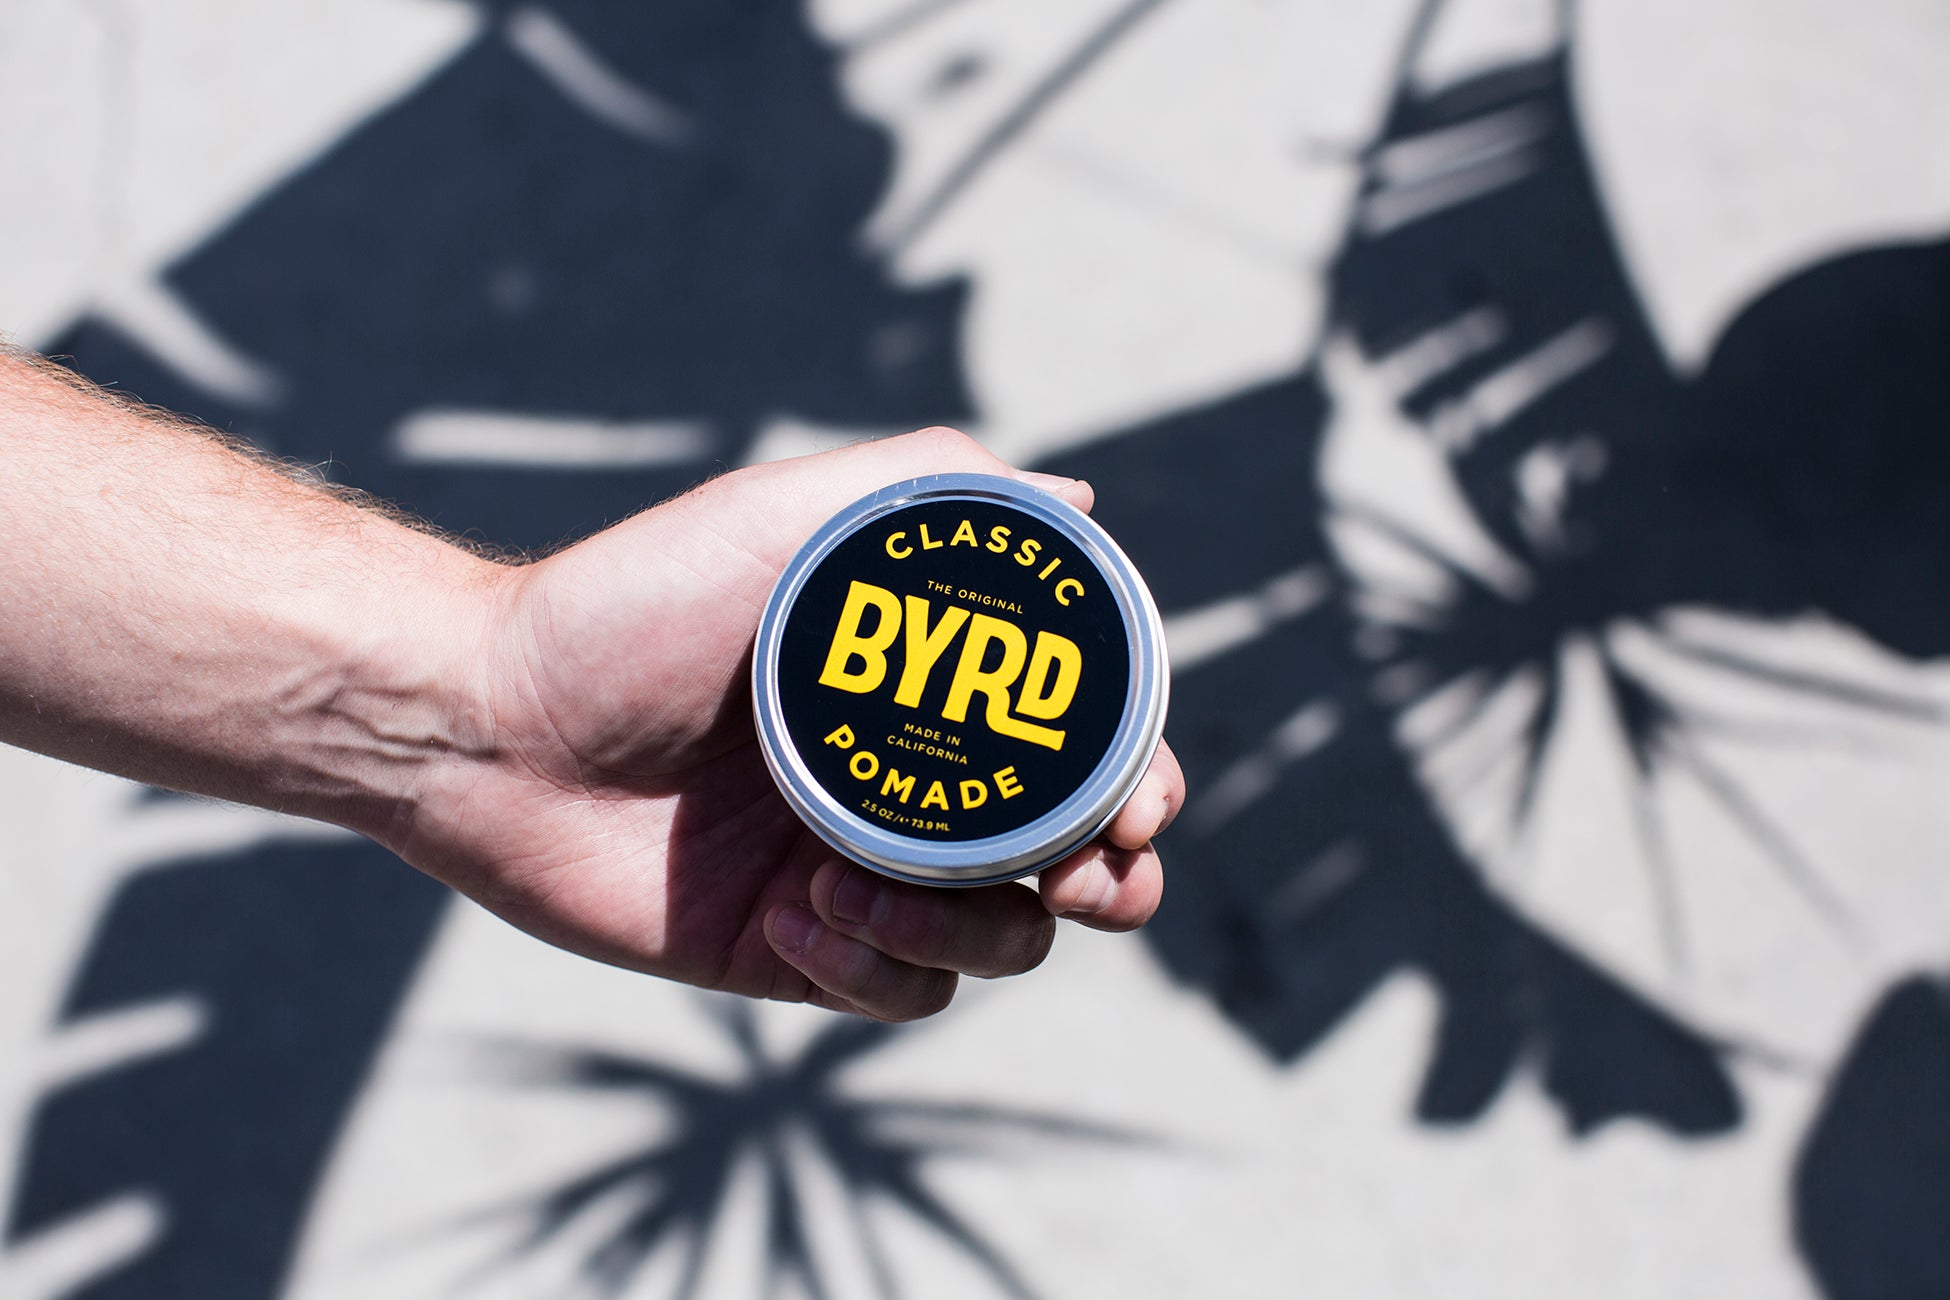 BYRD Hairdo Products | Made in California